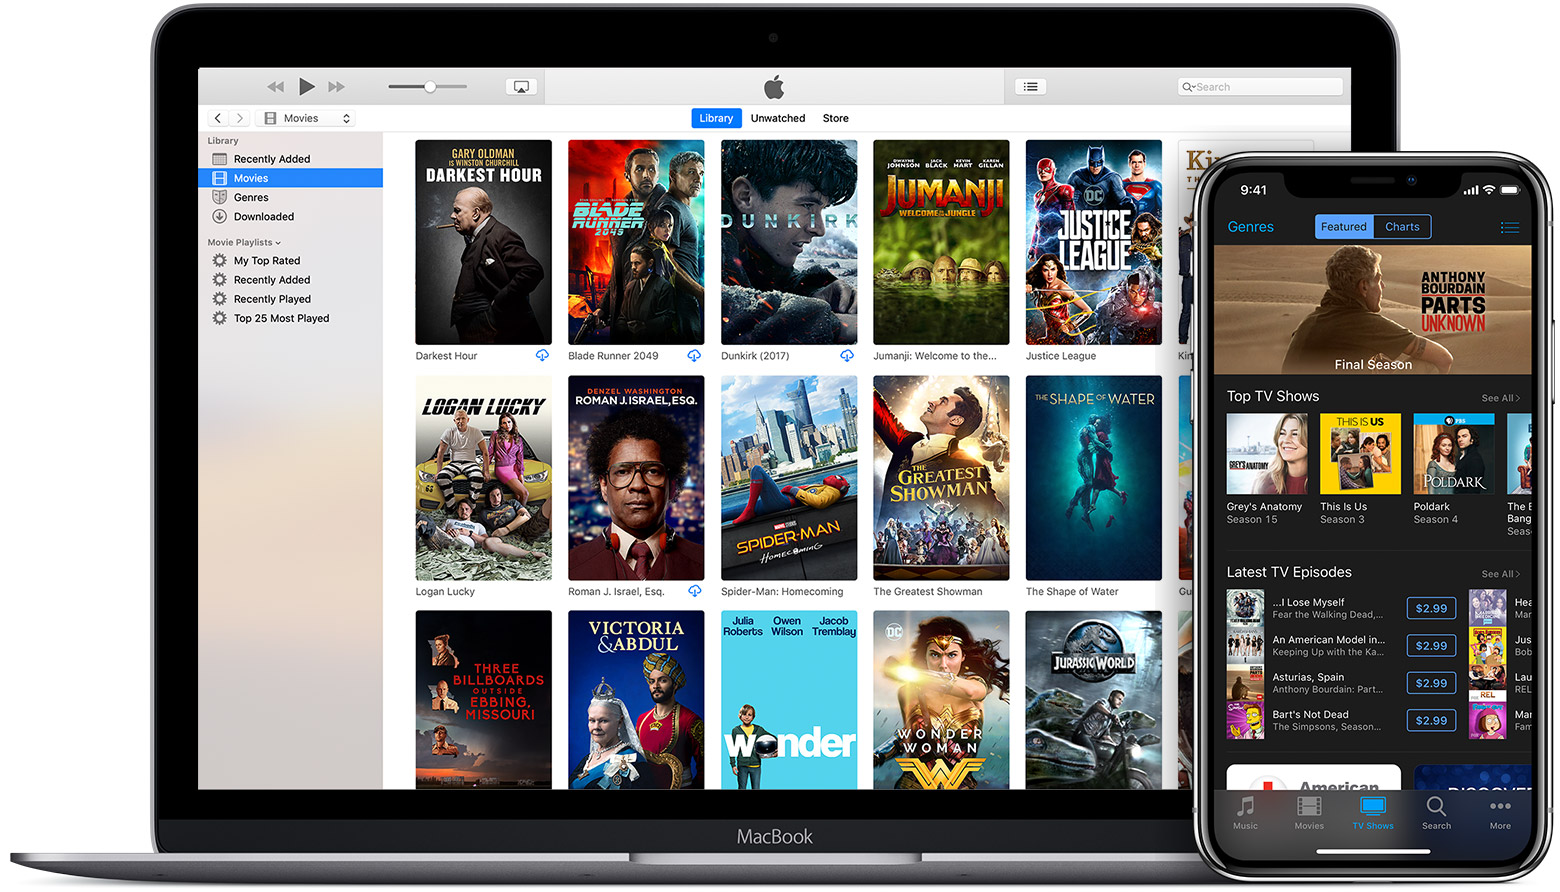 Mac showing the Movies in a Library and iPhone showing TV shows in the iTunes Store.